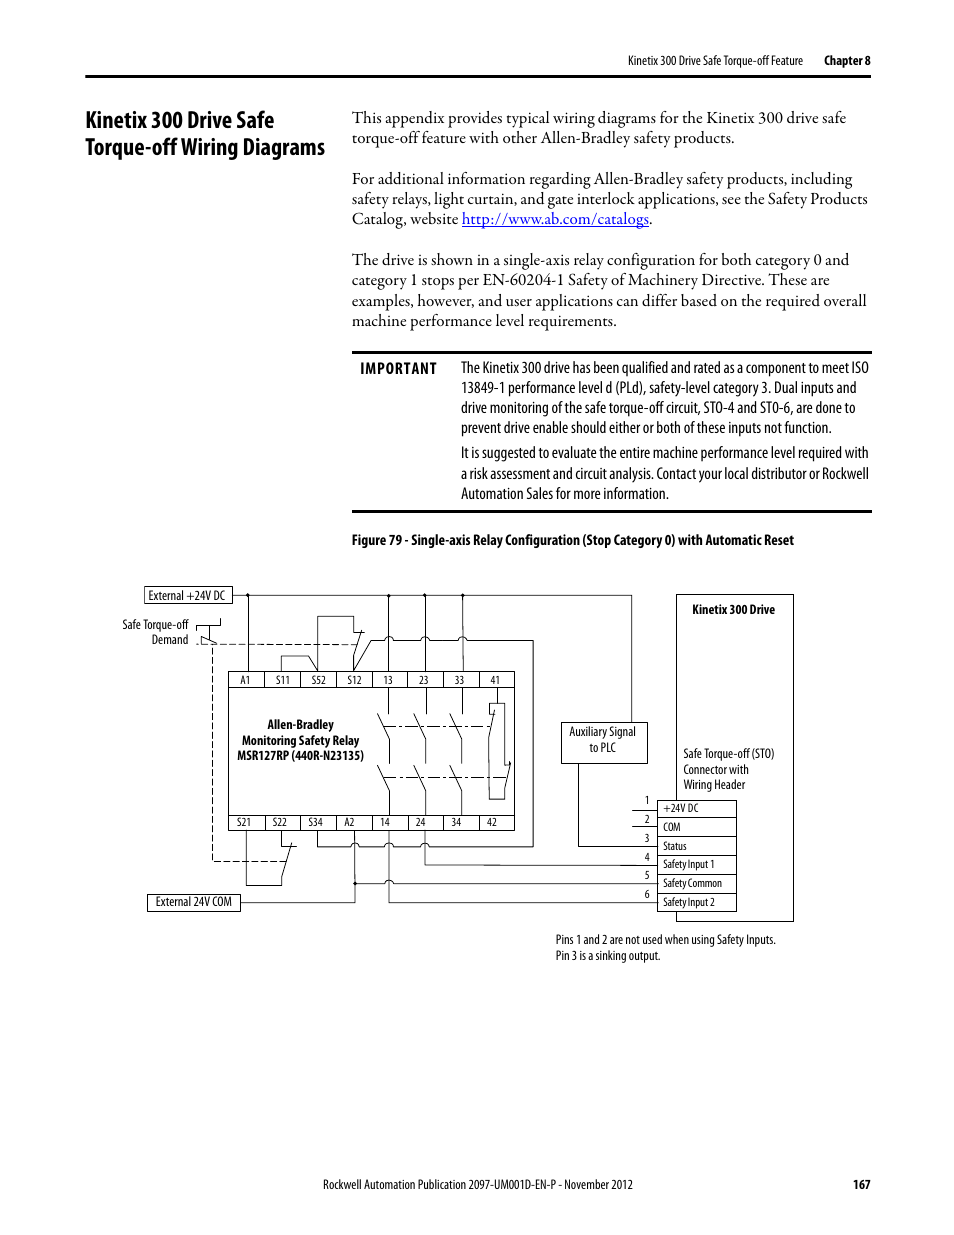 Rockwell automation wiring diagram wiring diagrams schematics rockwell plc wiring schematics plc programming schematic control rockwell automation clock tower midnight programmable automation cheapraybanclubmaster Gallery